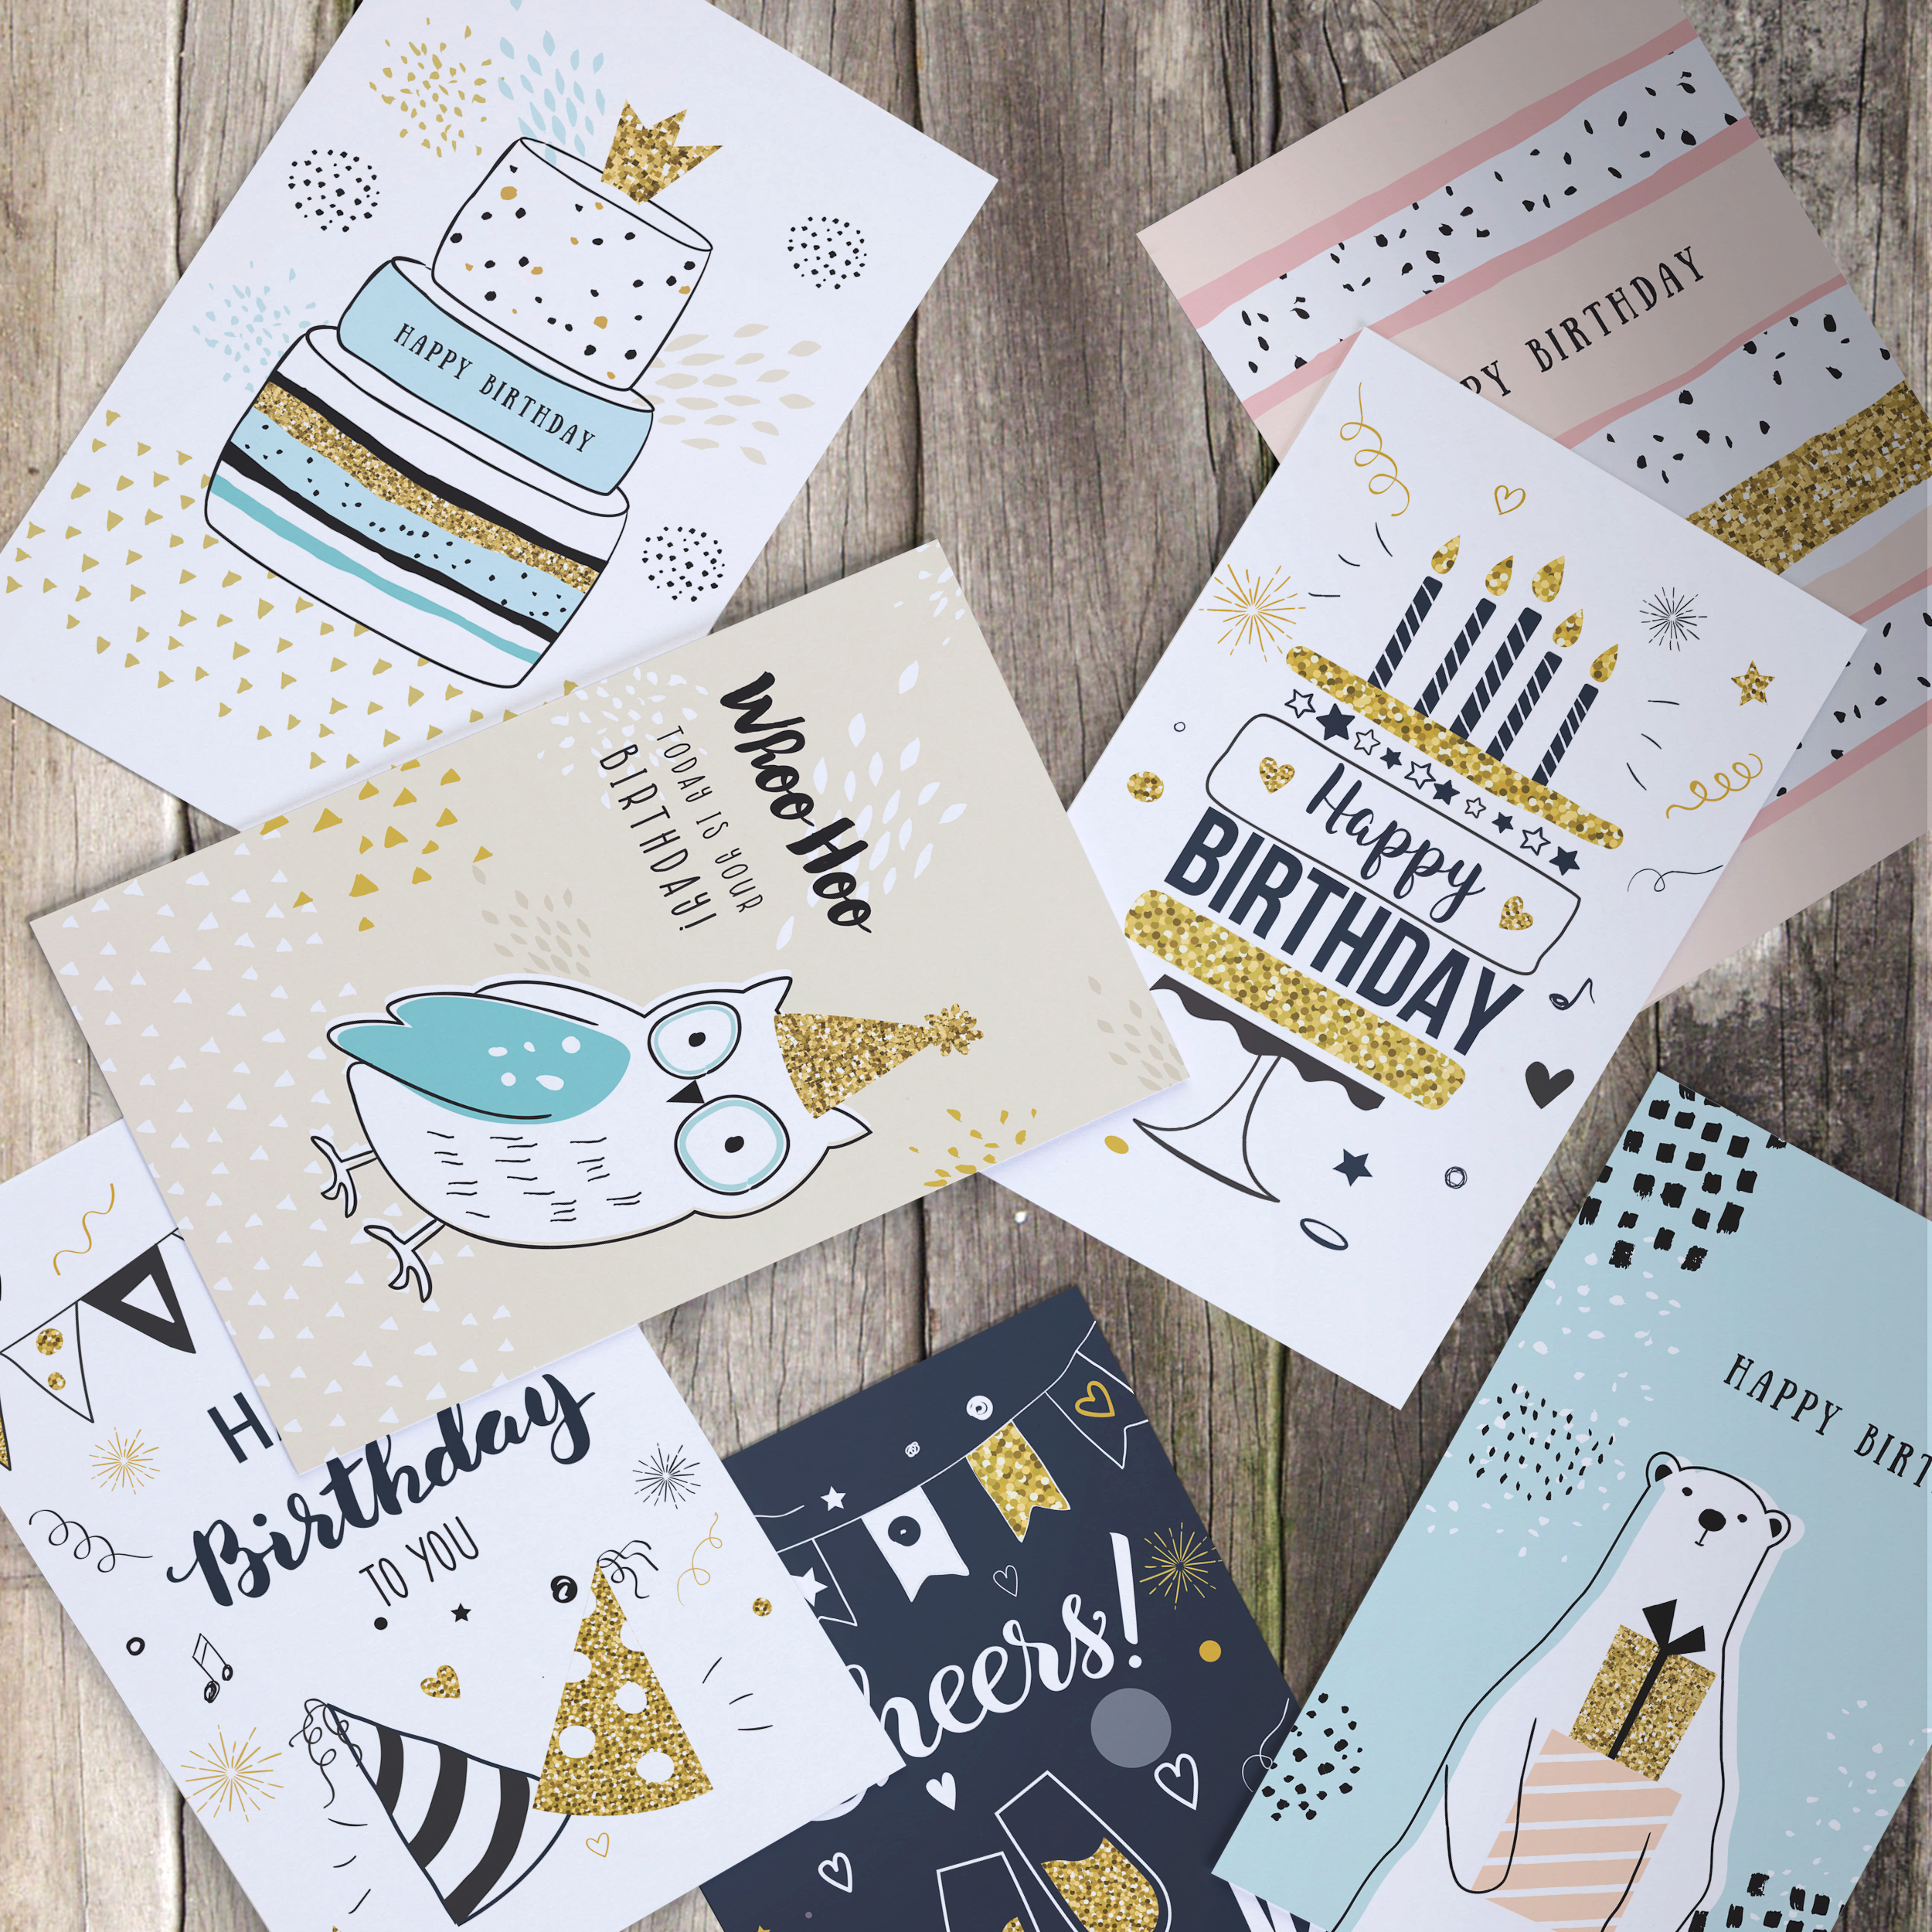 Happy Birthday Cards Assortment Bday Cards In Bulk 5x7 Assorted Variety Box Set 40 Pack Unique Designs Happy Birthday Cards Kids Birthday Cards Bday Cards